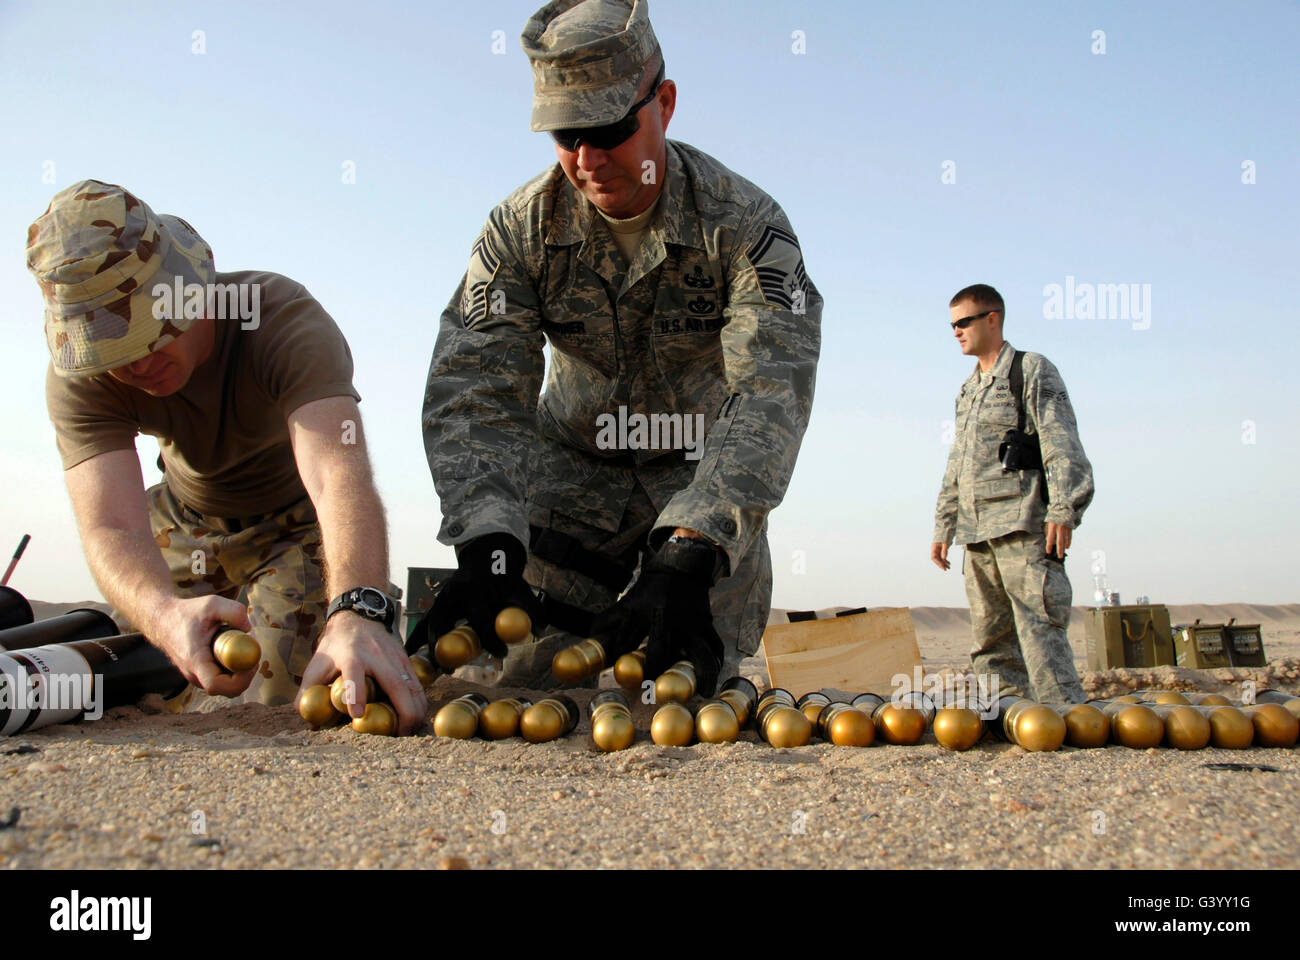 Technicians prepare grenades for disposal during a controlled detonation. - Stock Image